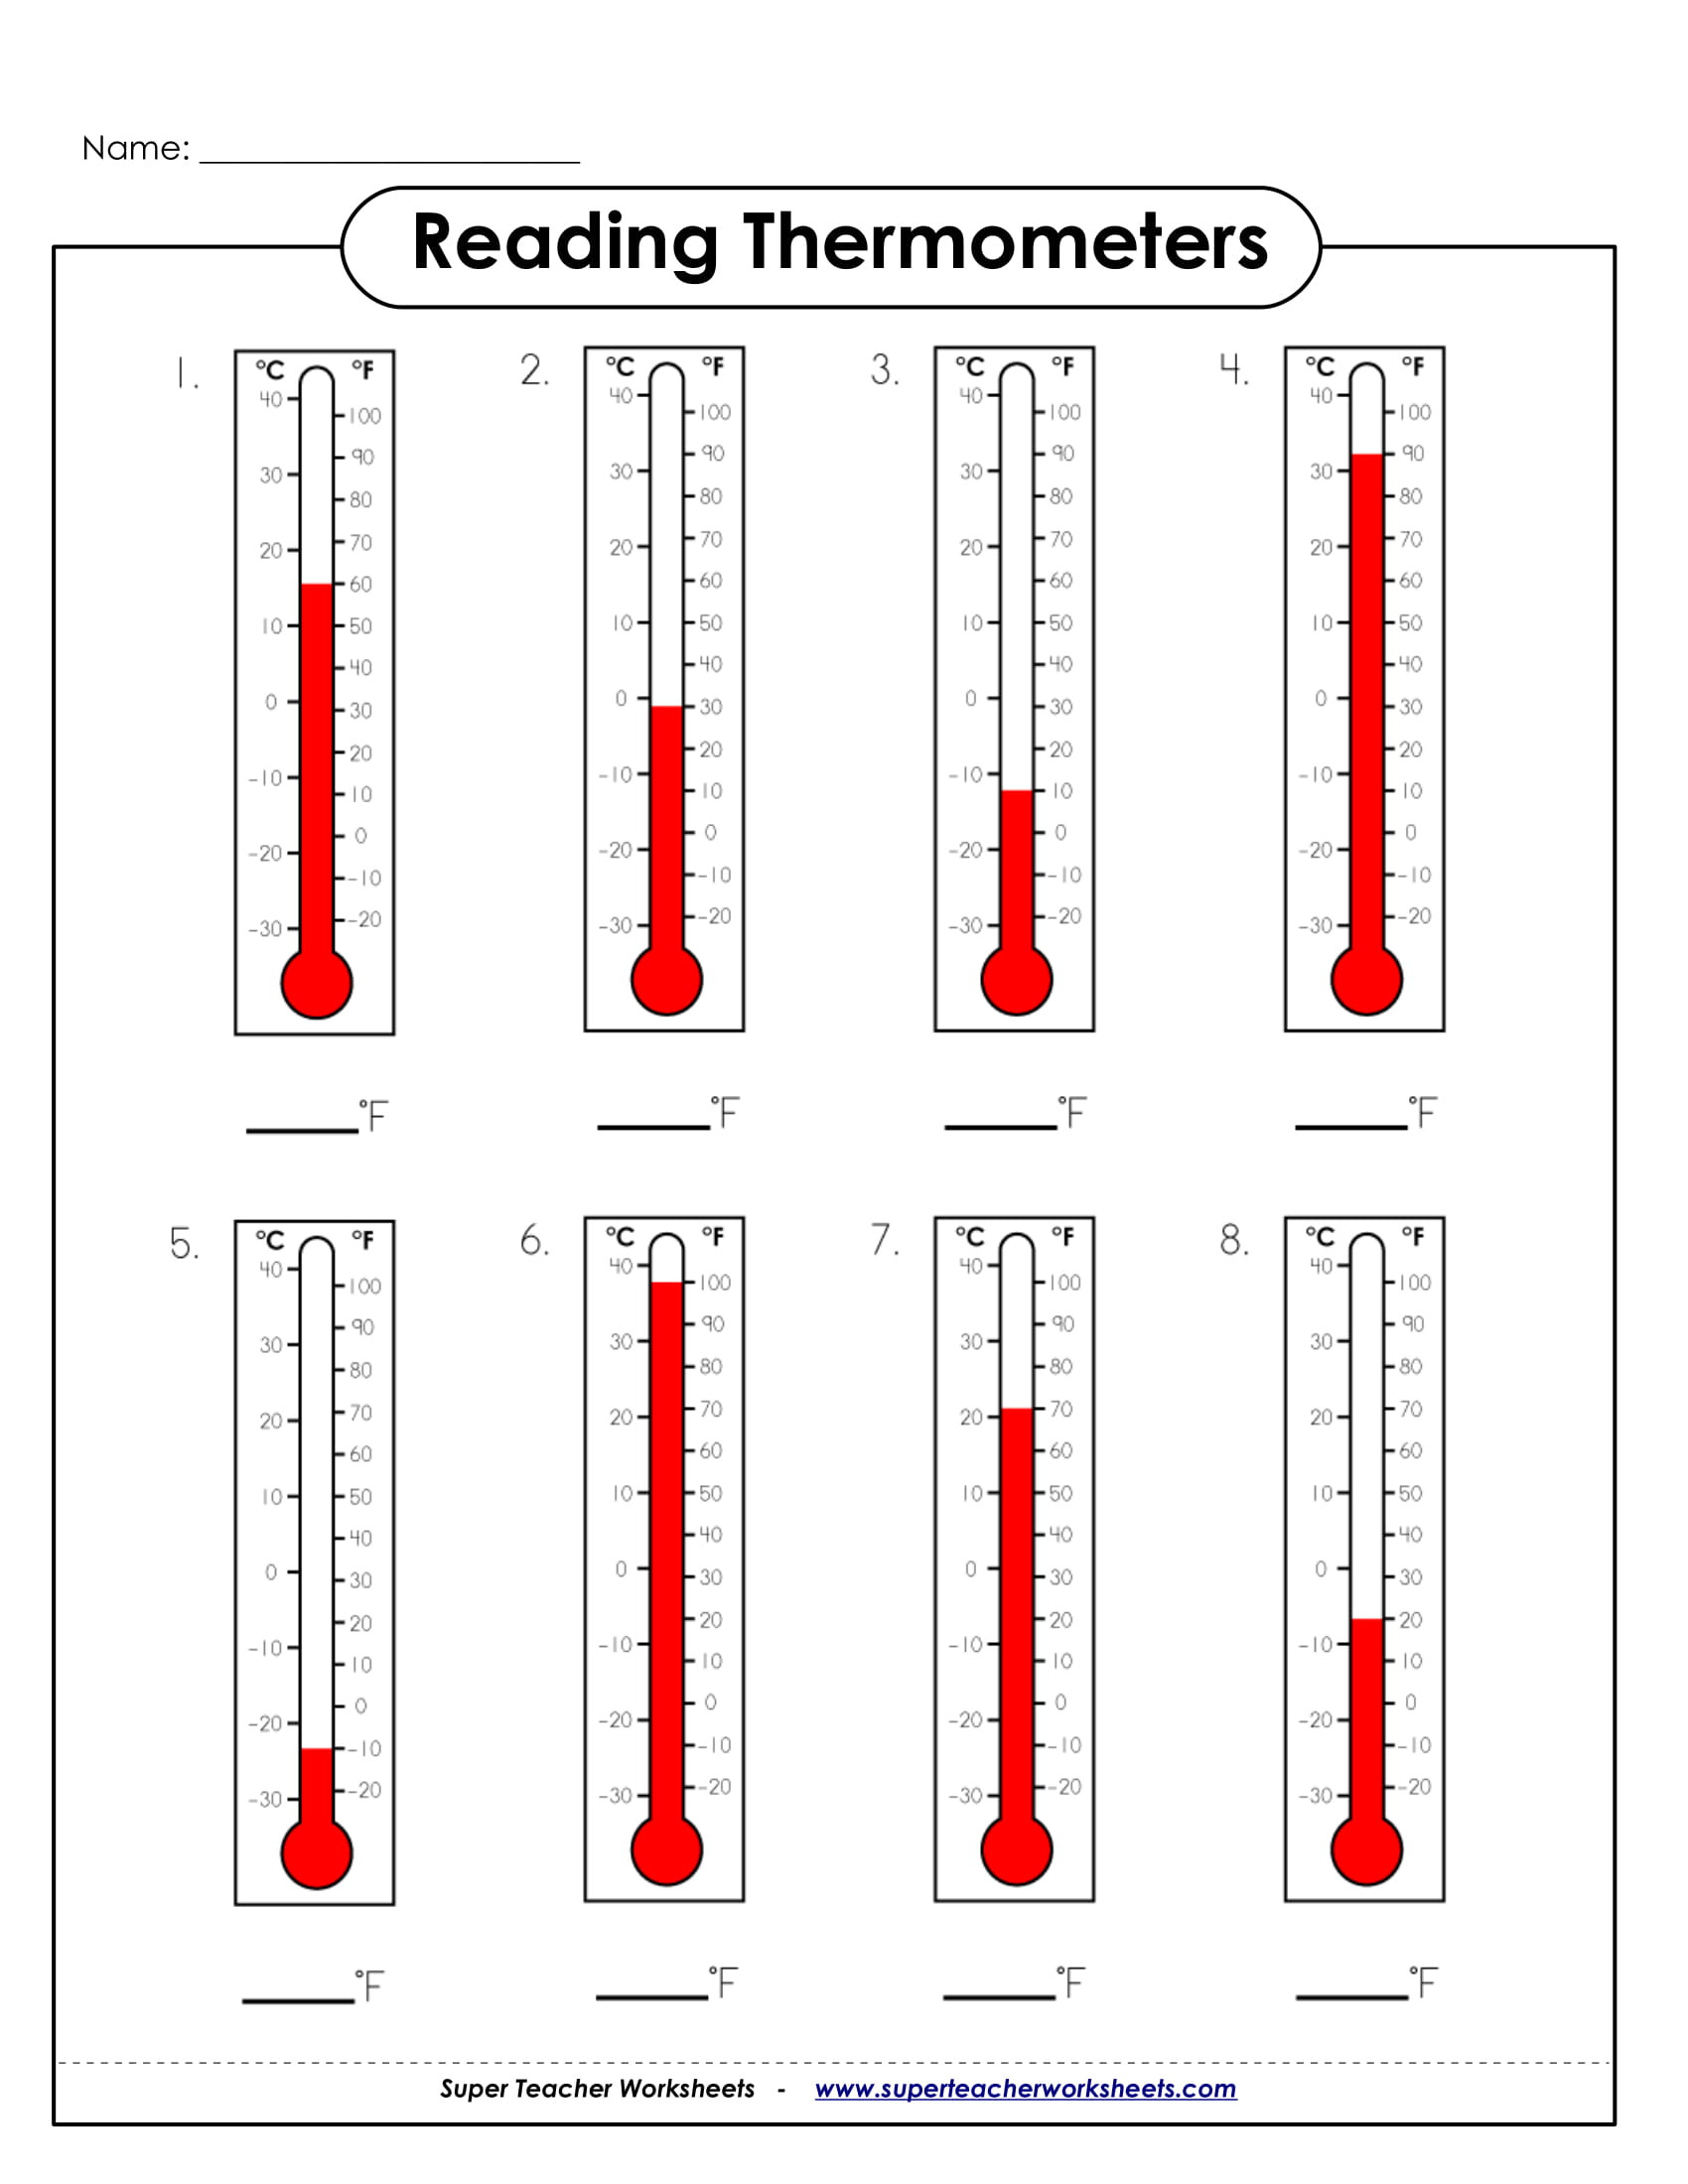 Reading A thermometer Worksheet 9 Math Worksheets for Students Pdf